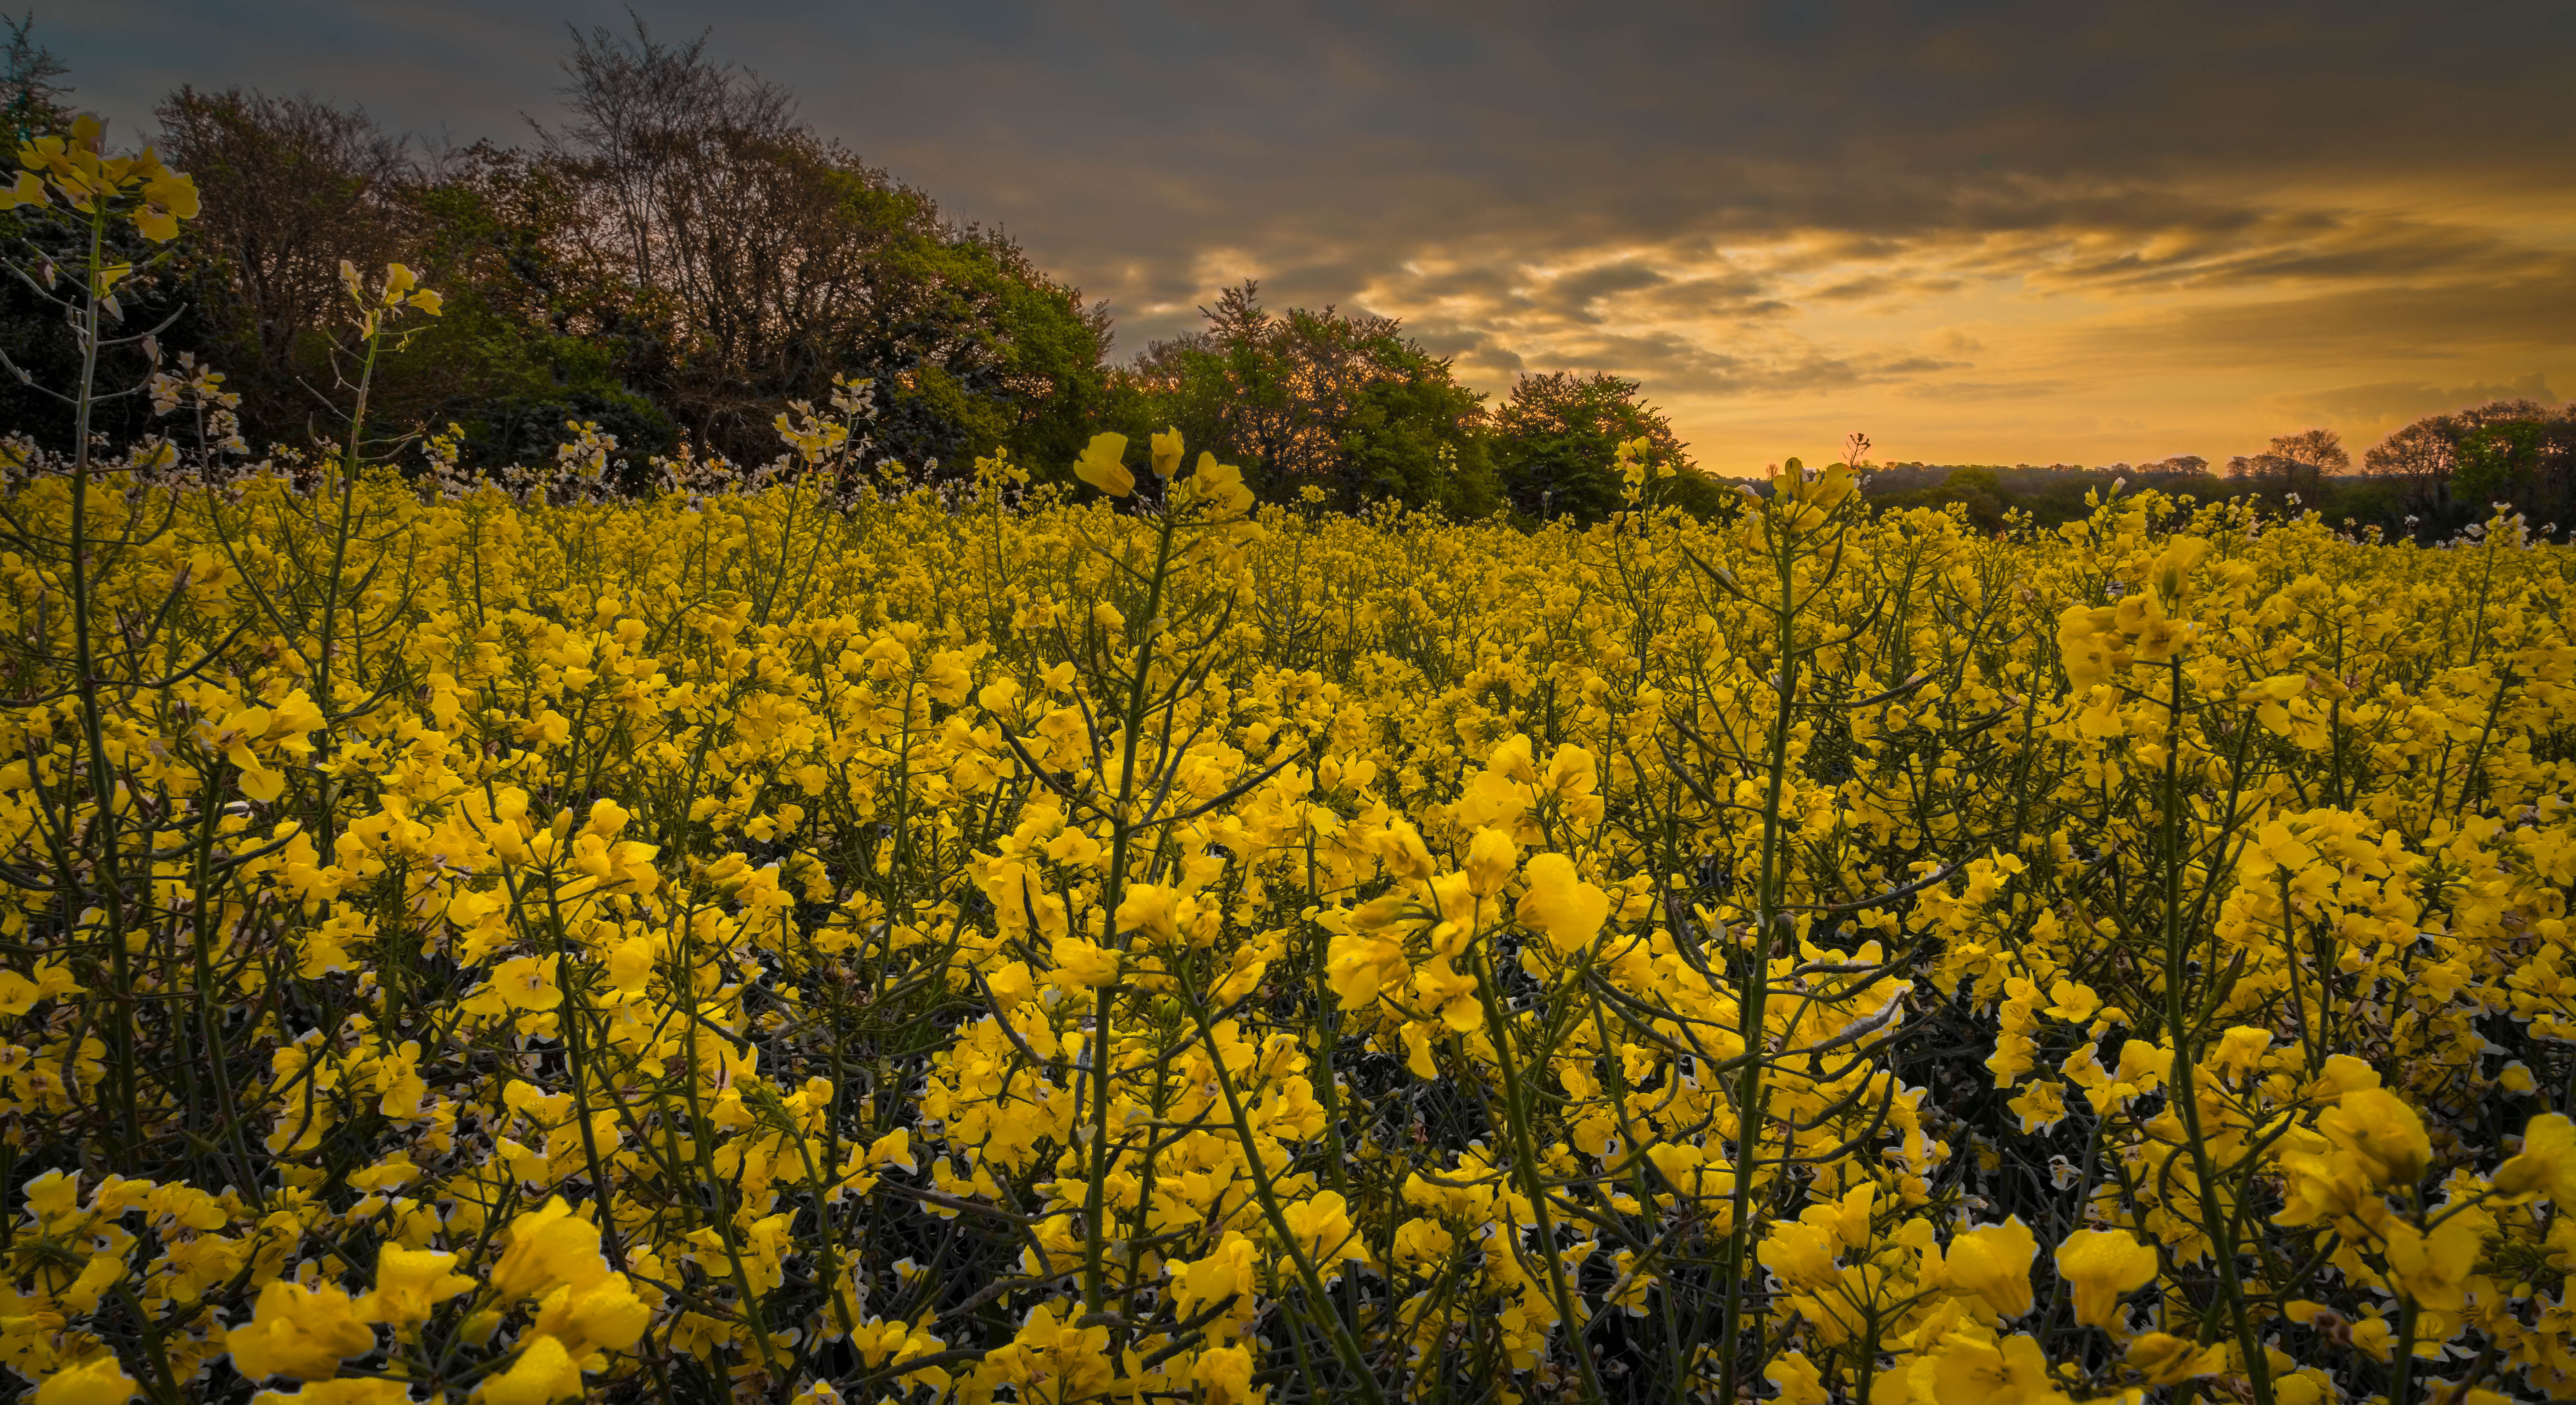 A.J.Page Sunrise over rapefields